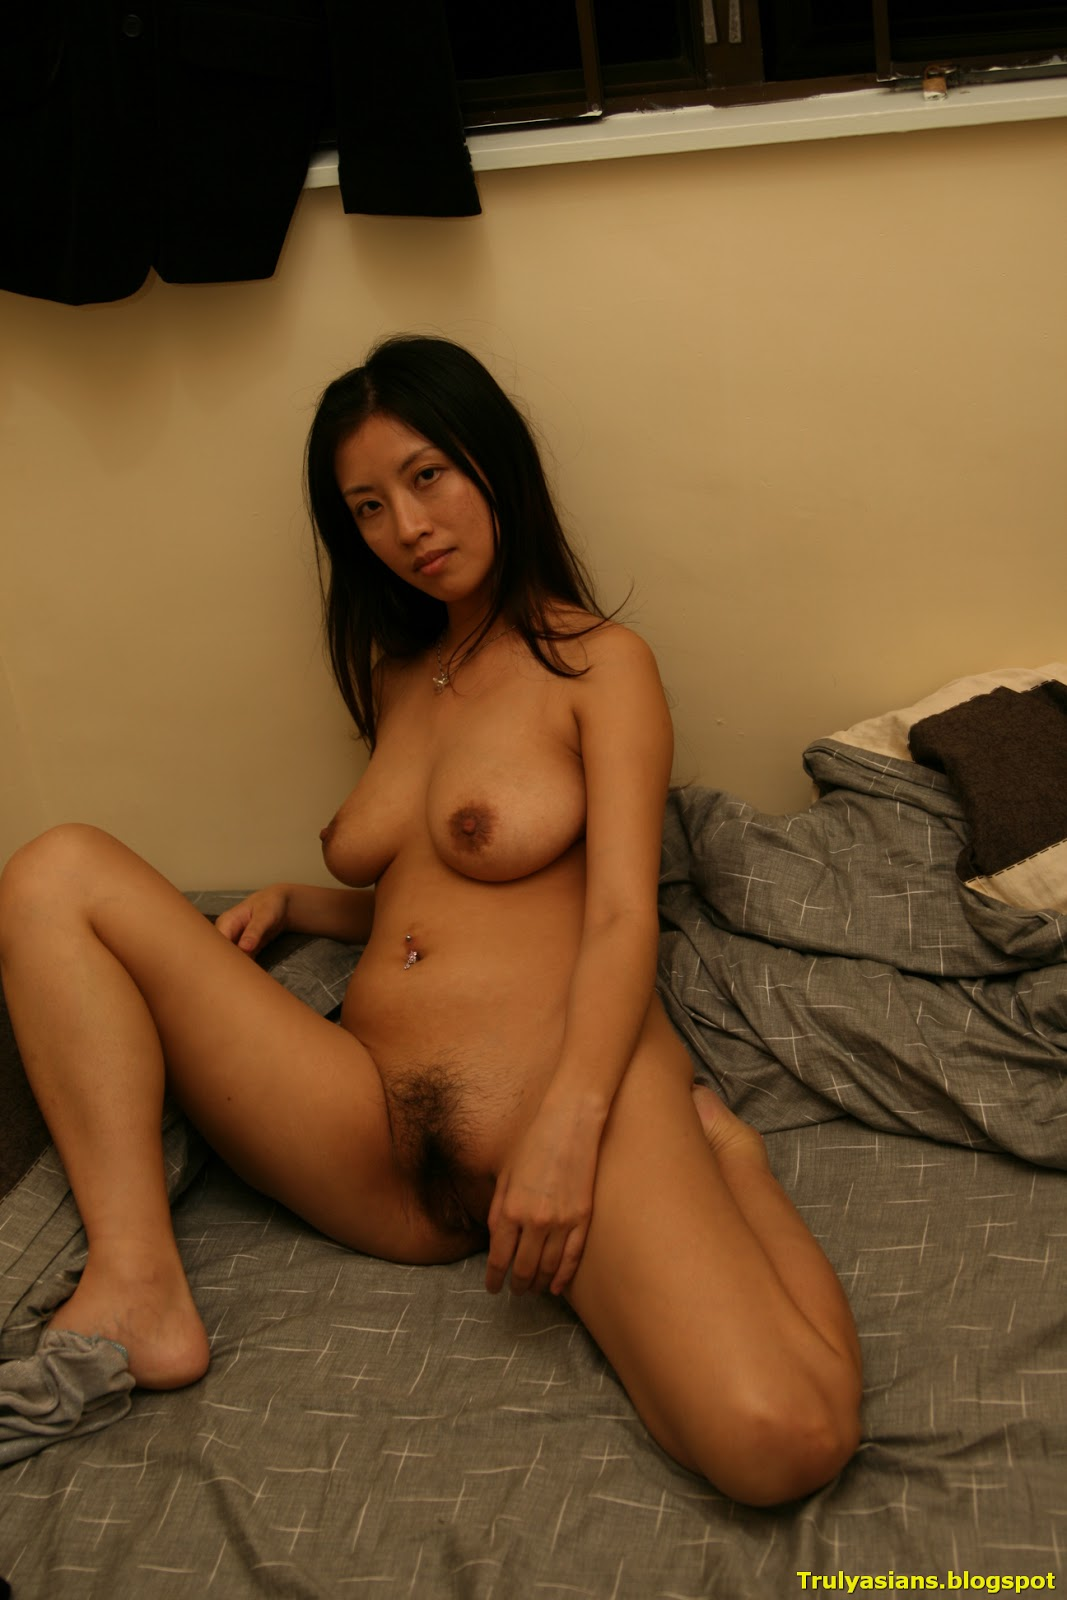 Beutiful arabic girl adult video pic